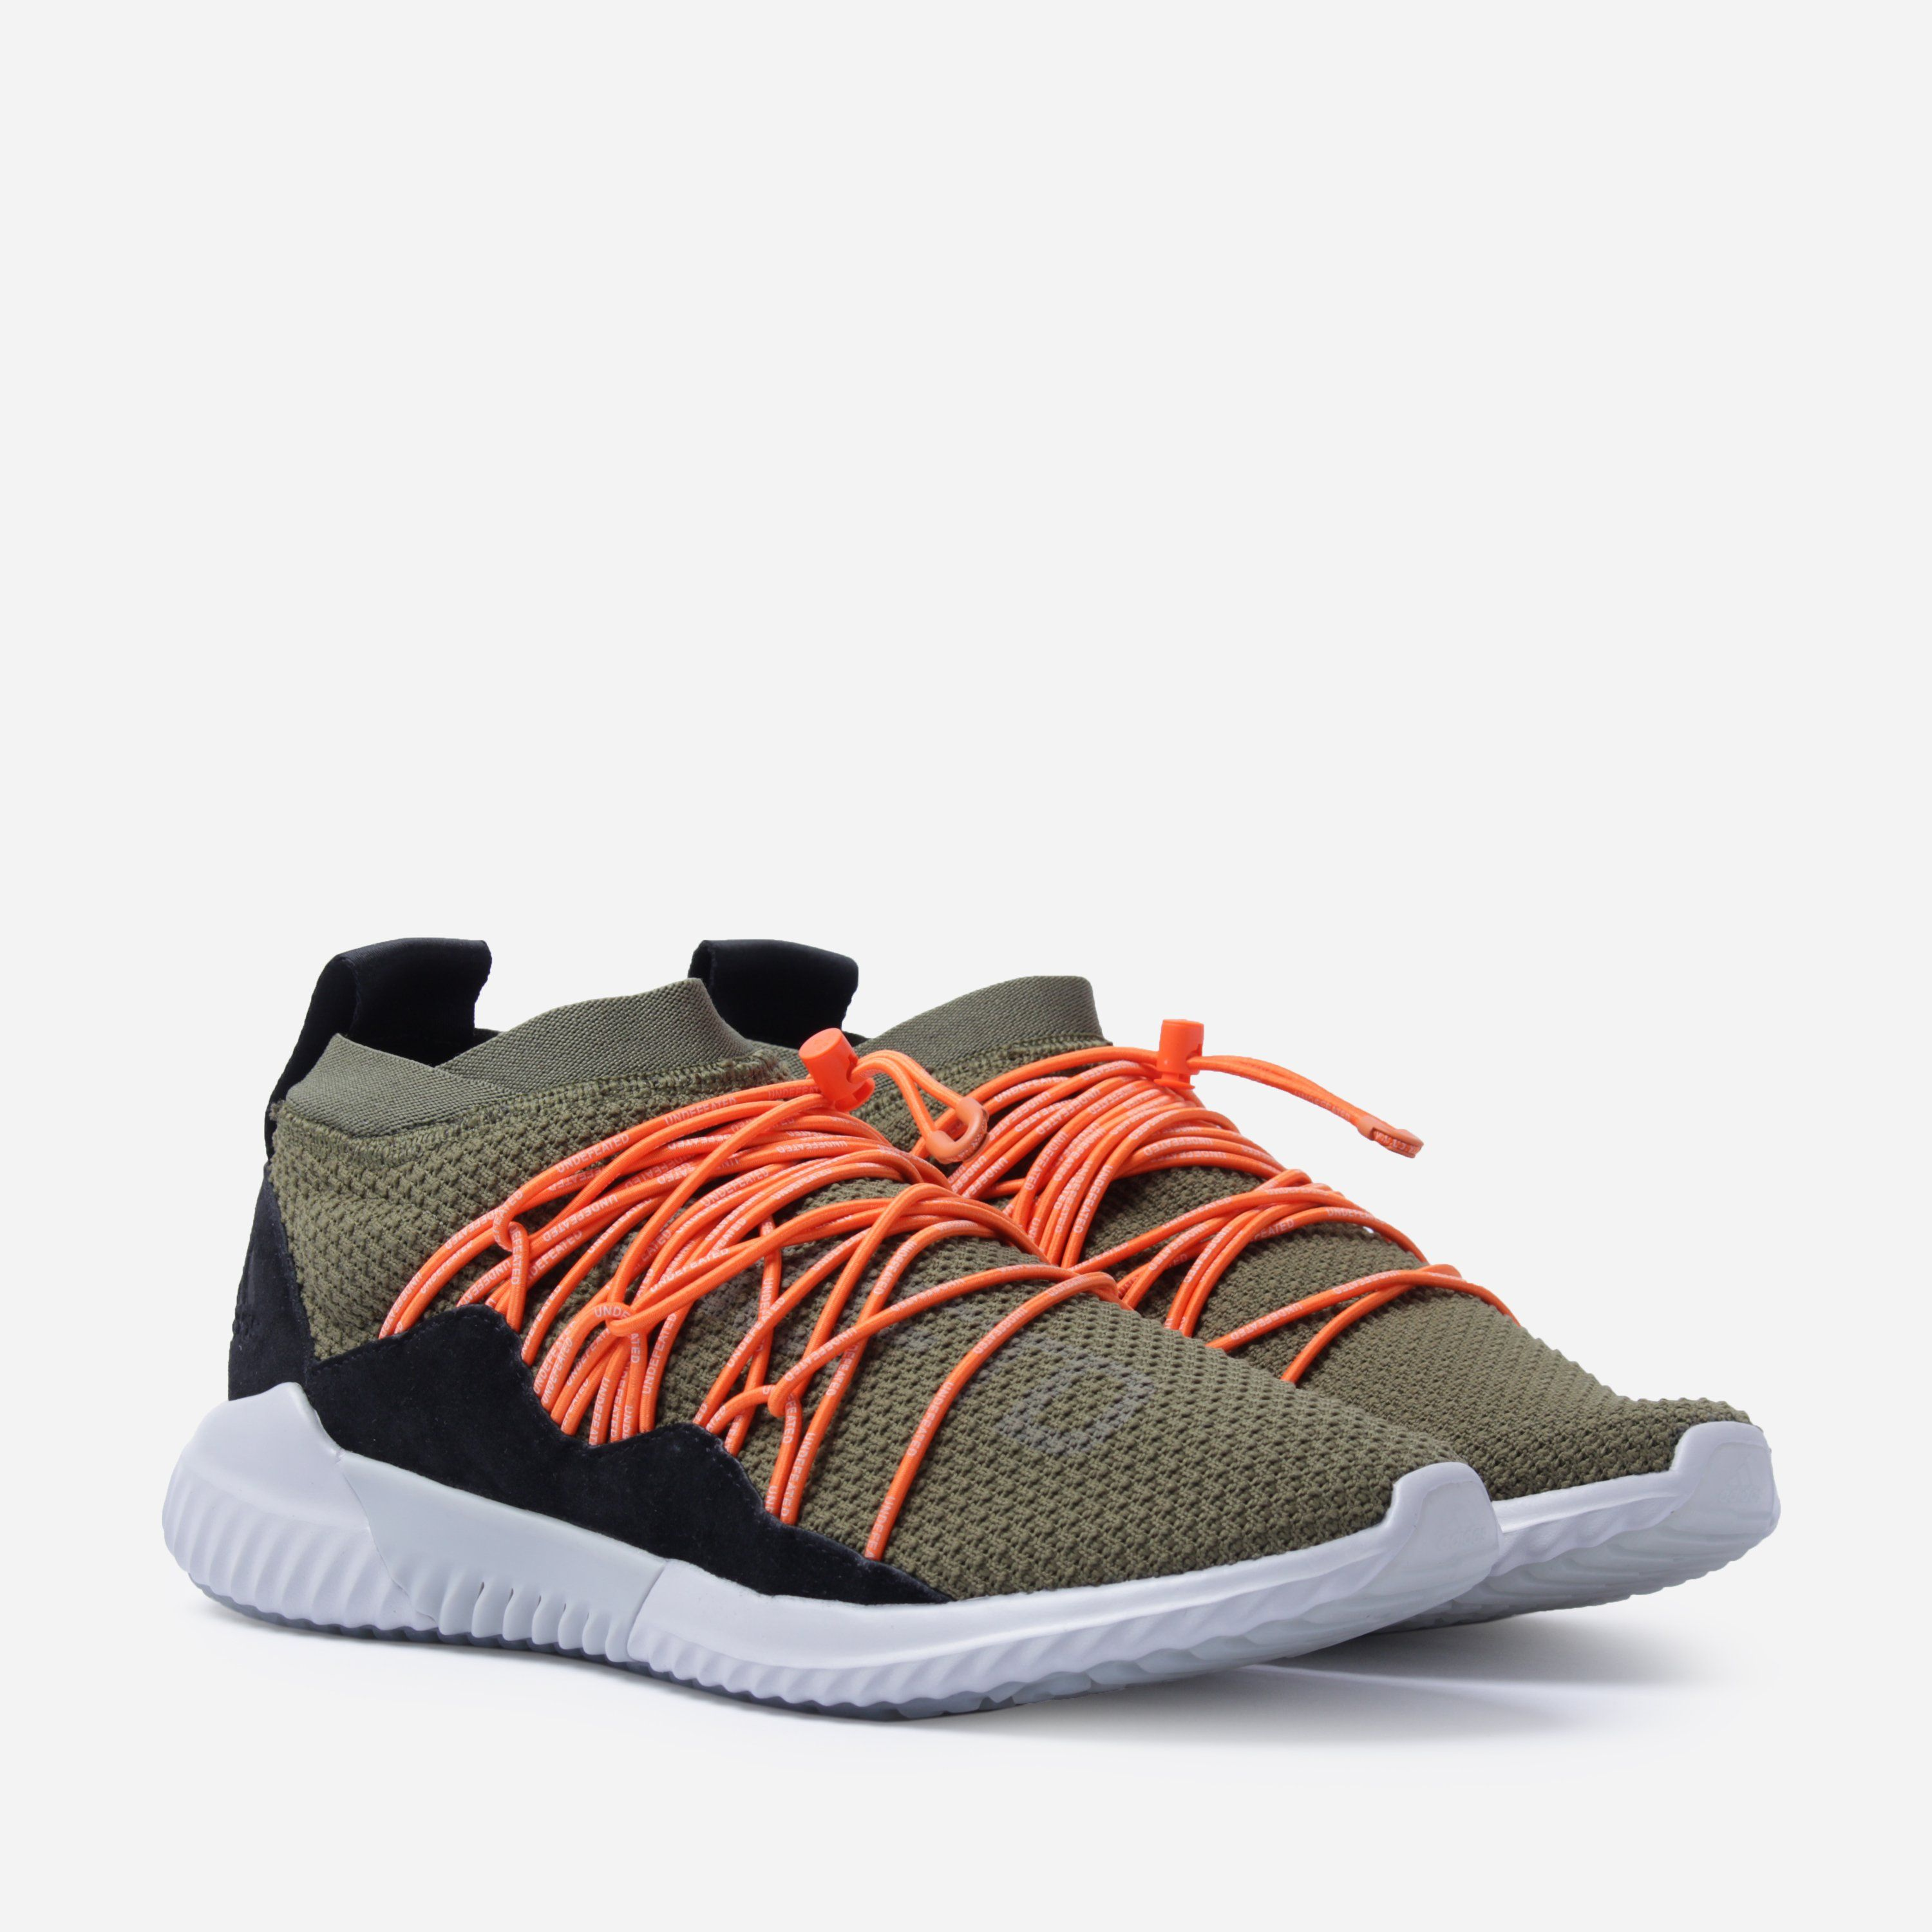 adidas x Undefeated G26649 CLIMACOOL UNDFTD